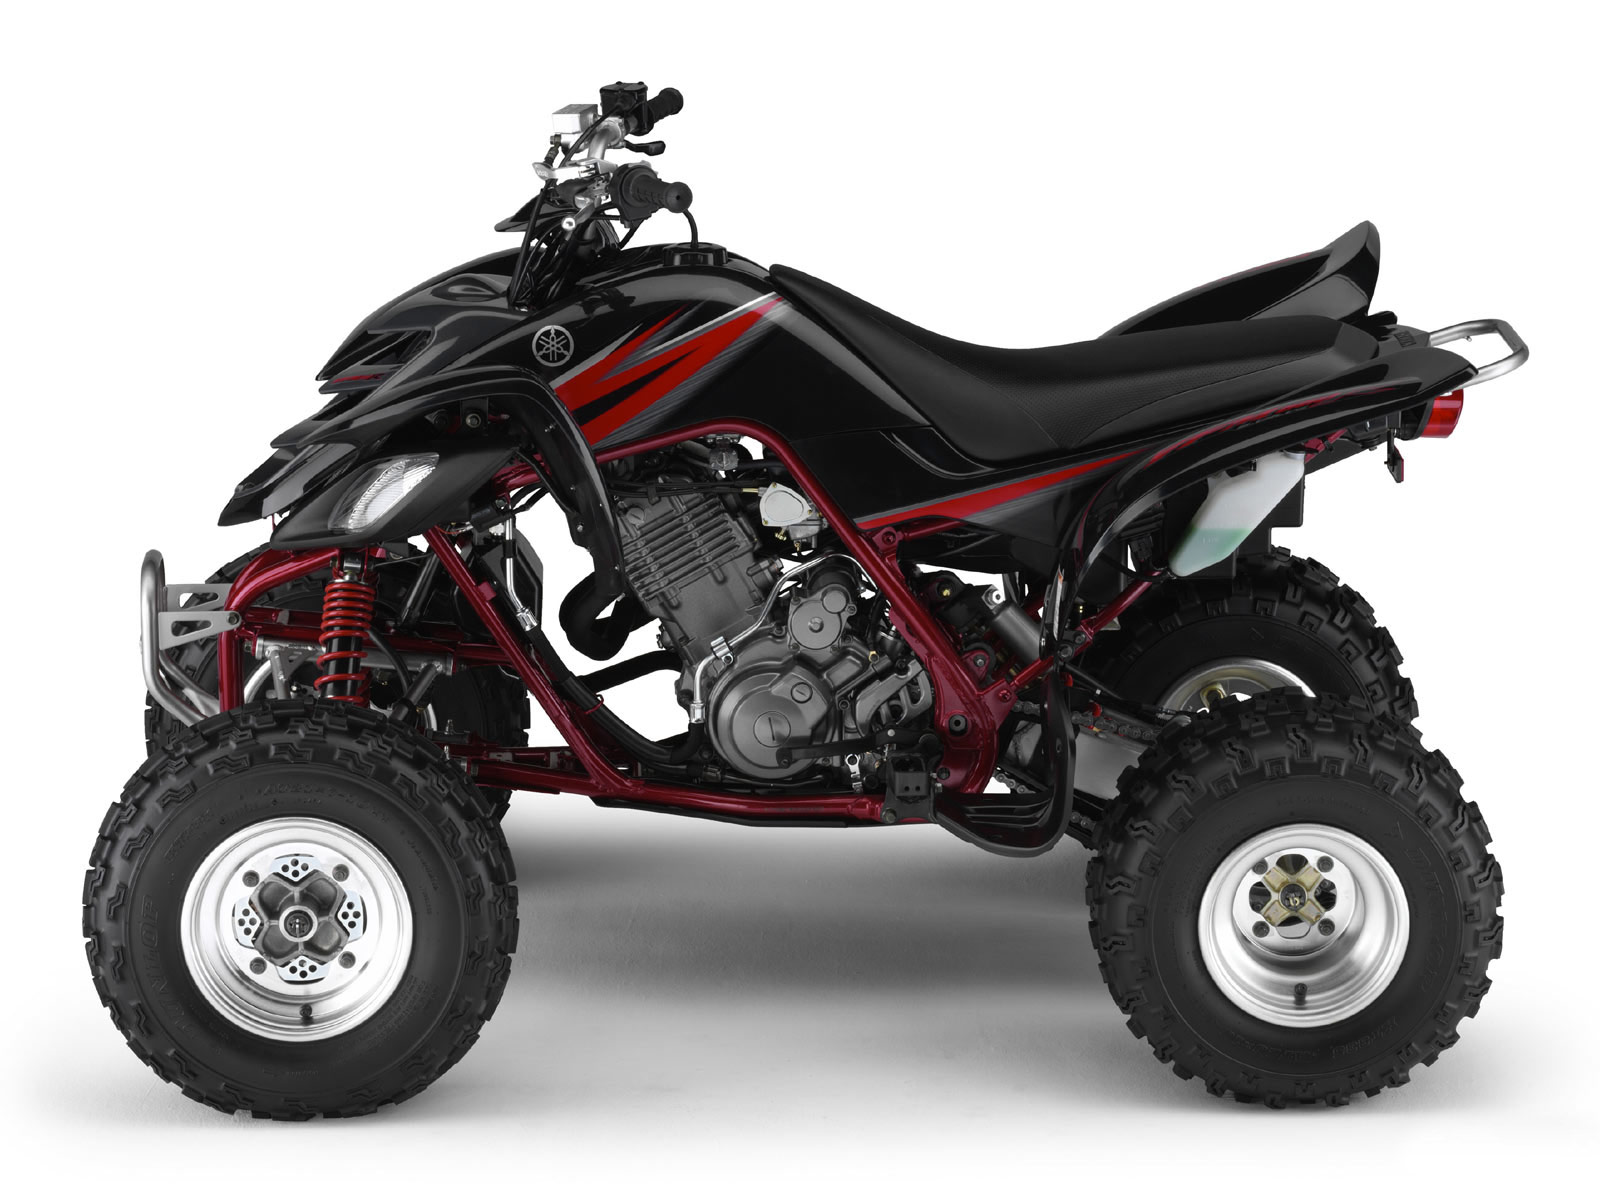 2005 YAMAHA Raptor 660 ATV pictures  review and specs